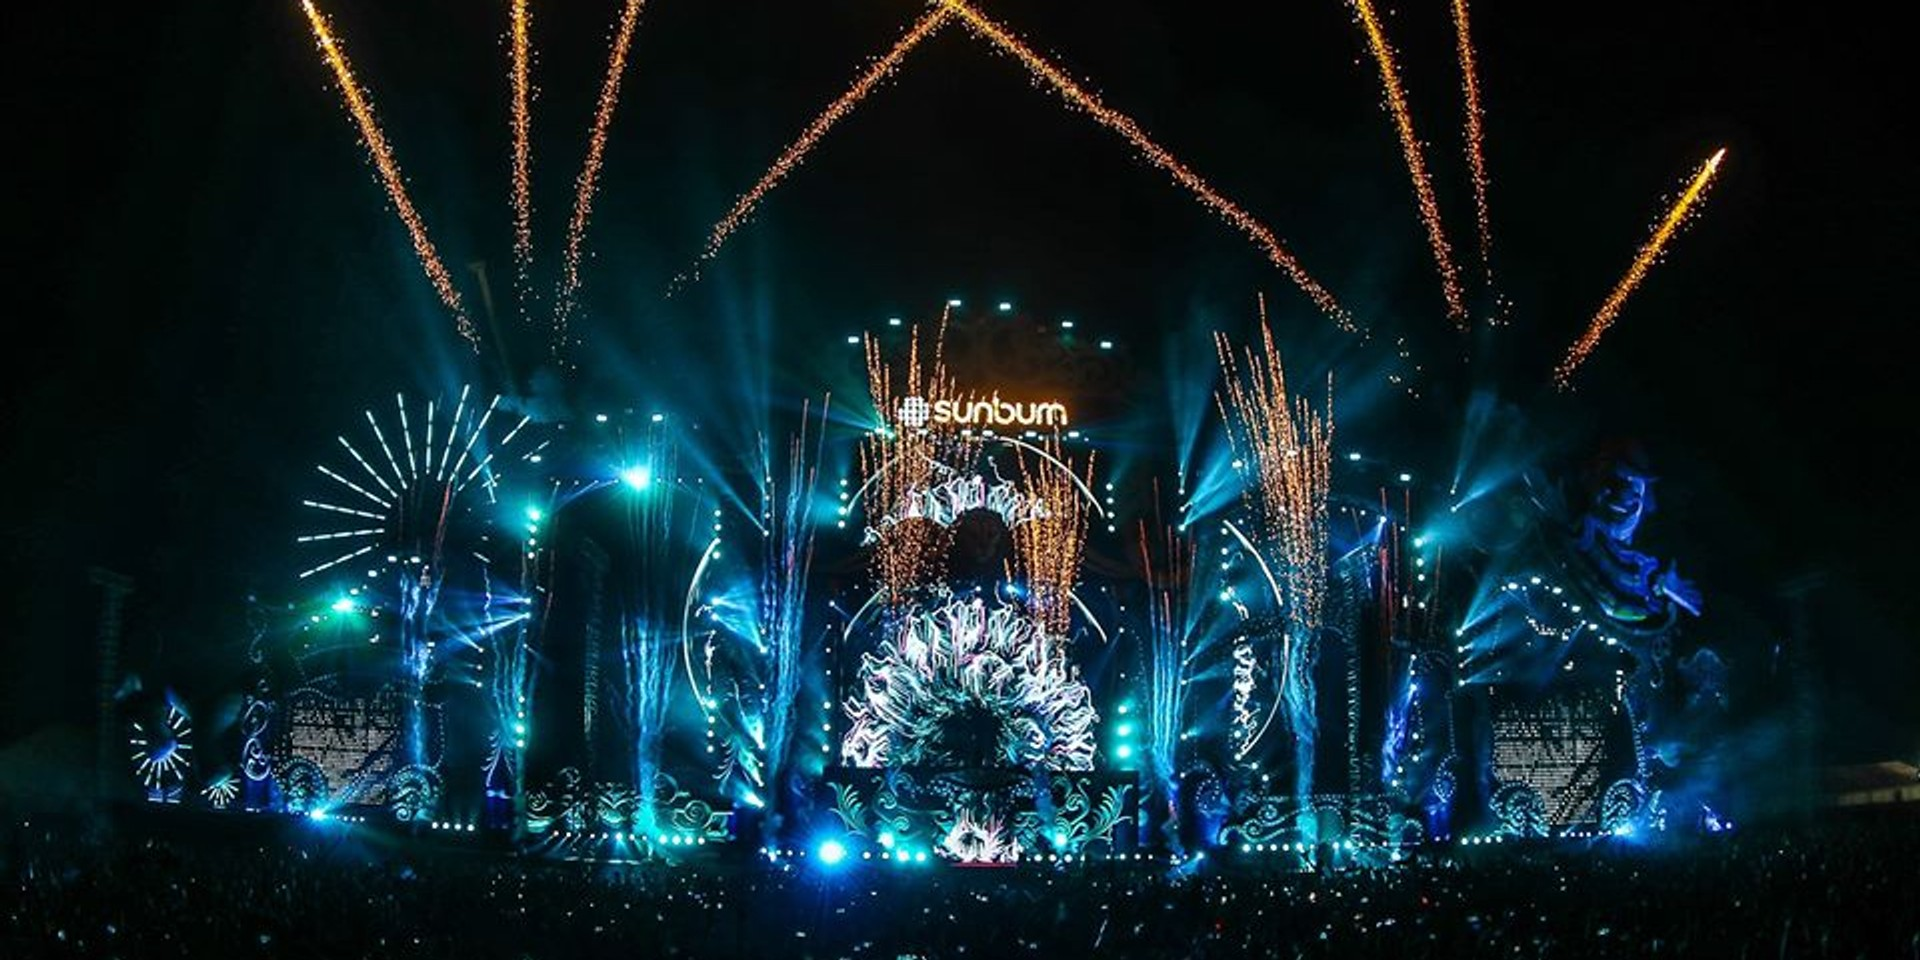 Asia's largest music festival, Sunburn, goes online with new extended reality technology